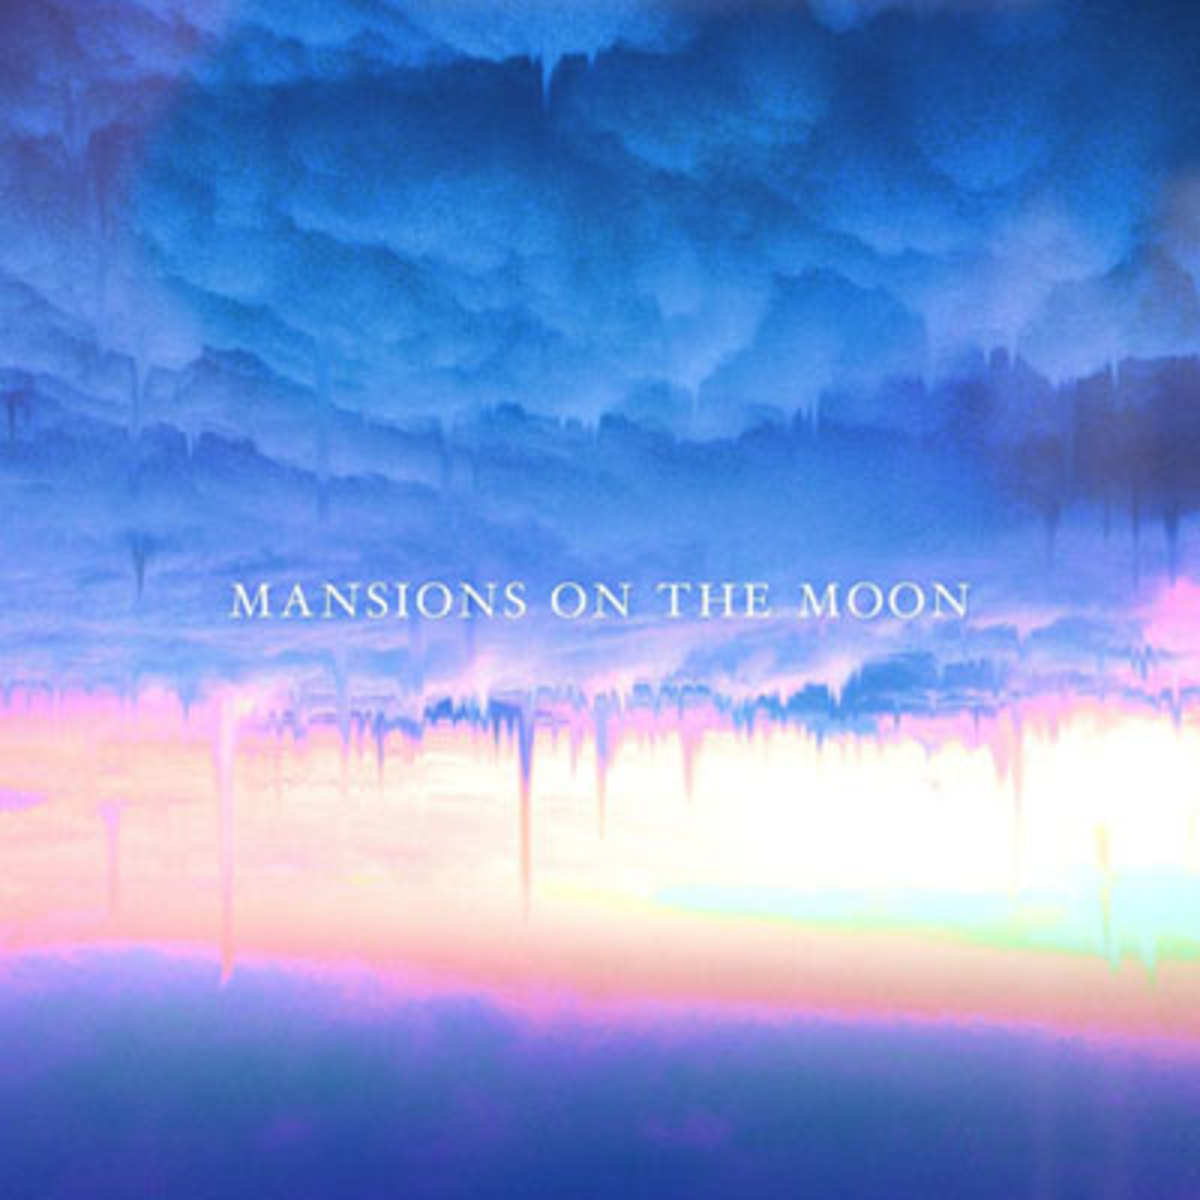 mansionsonthemoon.jpg